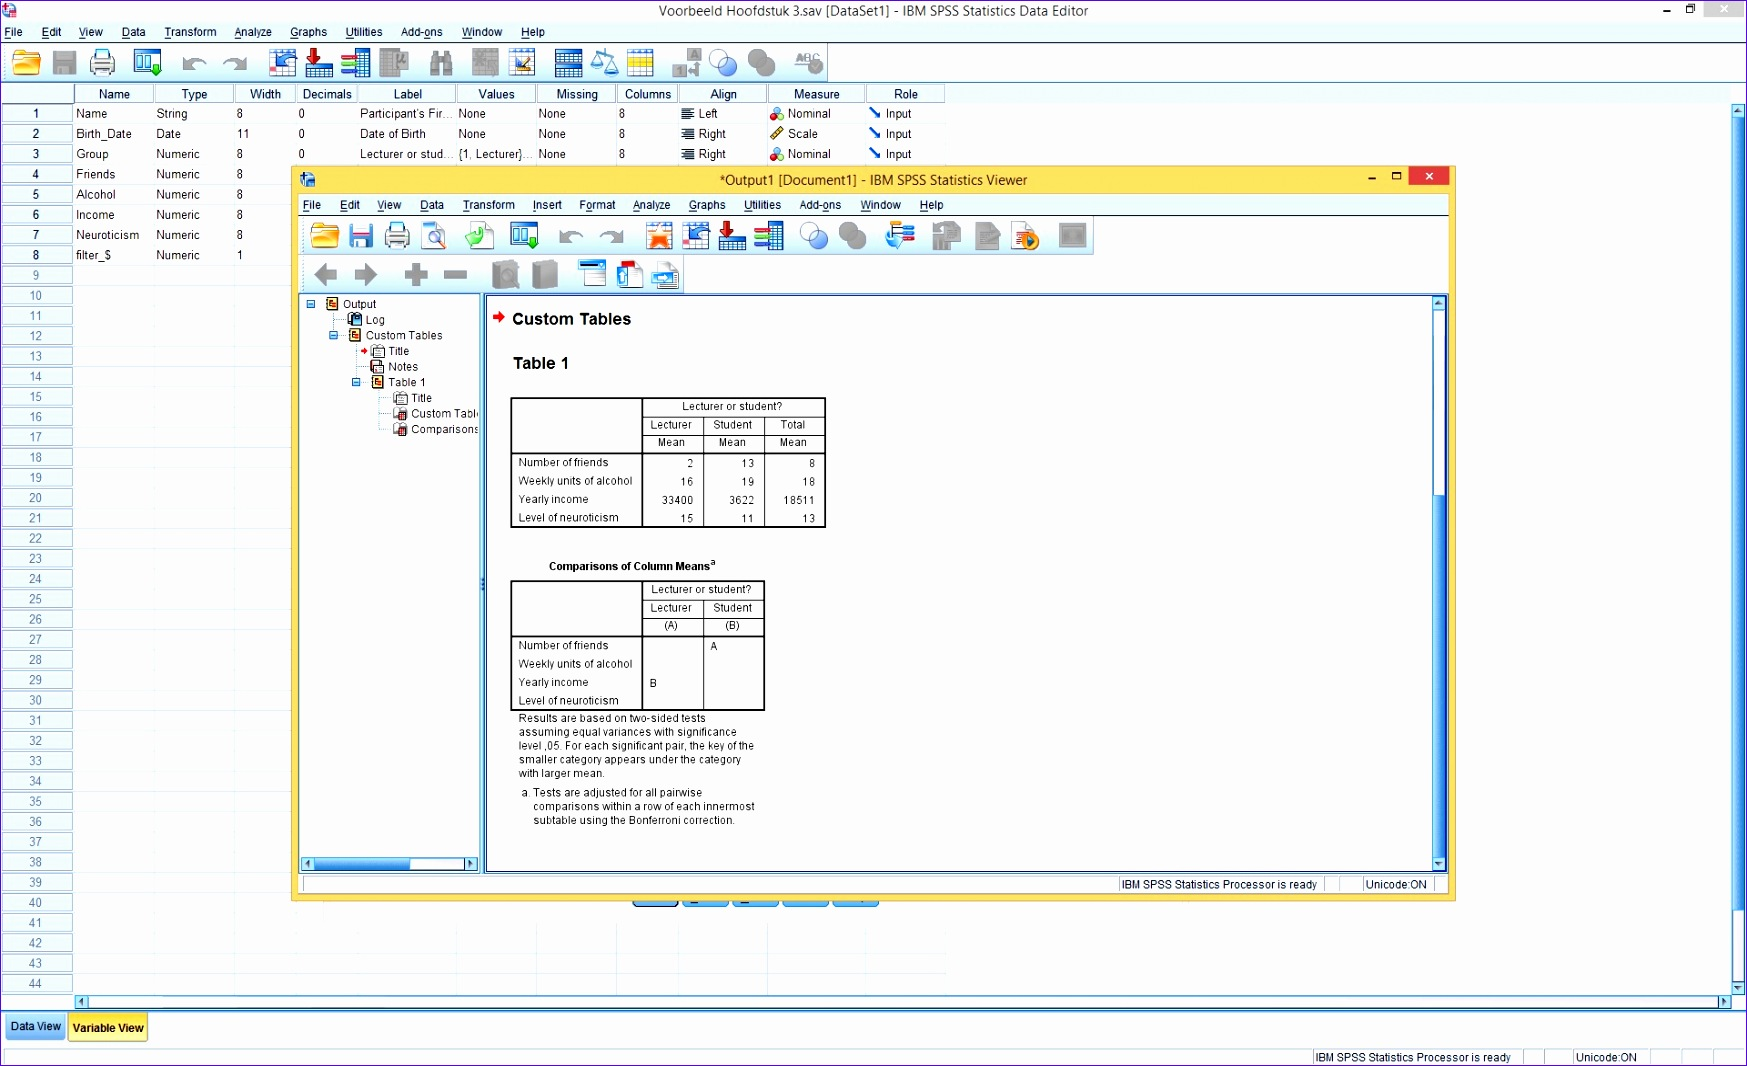 SPSS screenshot results